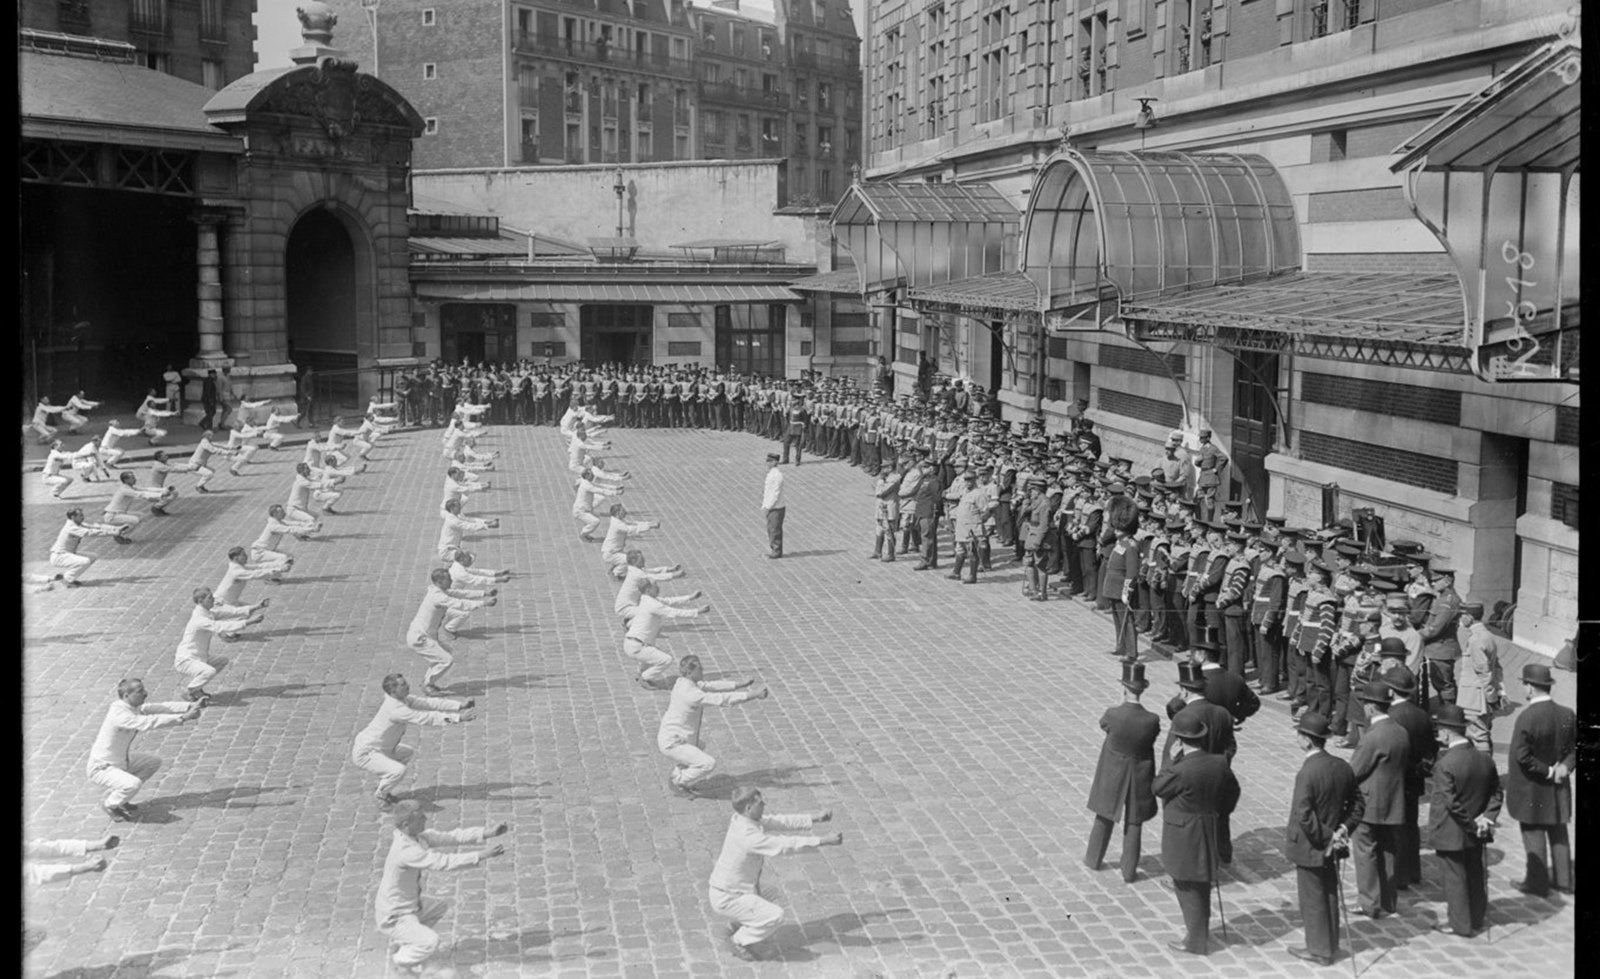 At the barracks in the centre of Paris: Physical Education with a military band, 1917 Paris, French National Library - Bibliothèque Nationale de France, Public Domain Mark